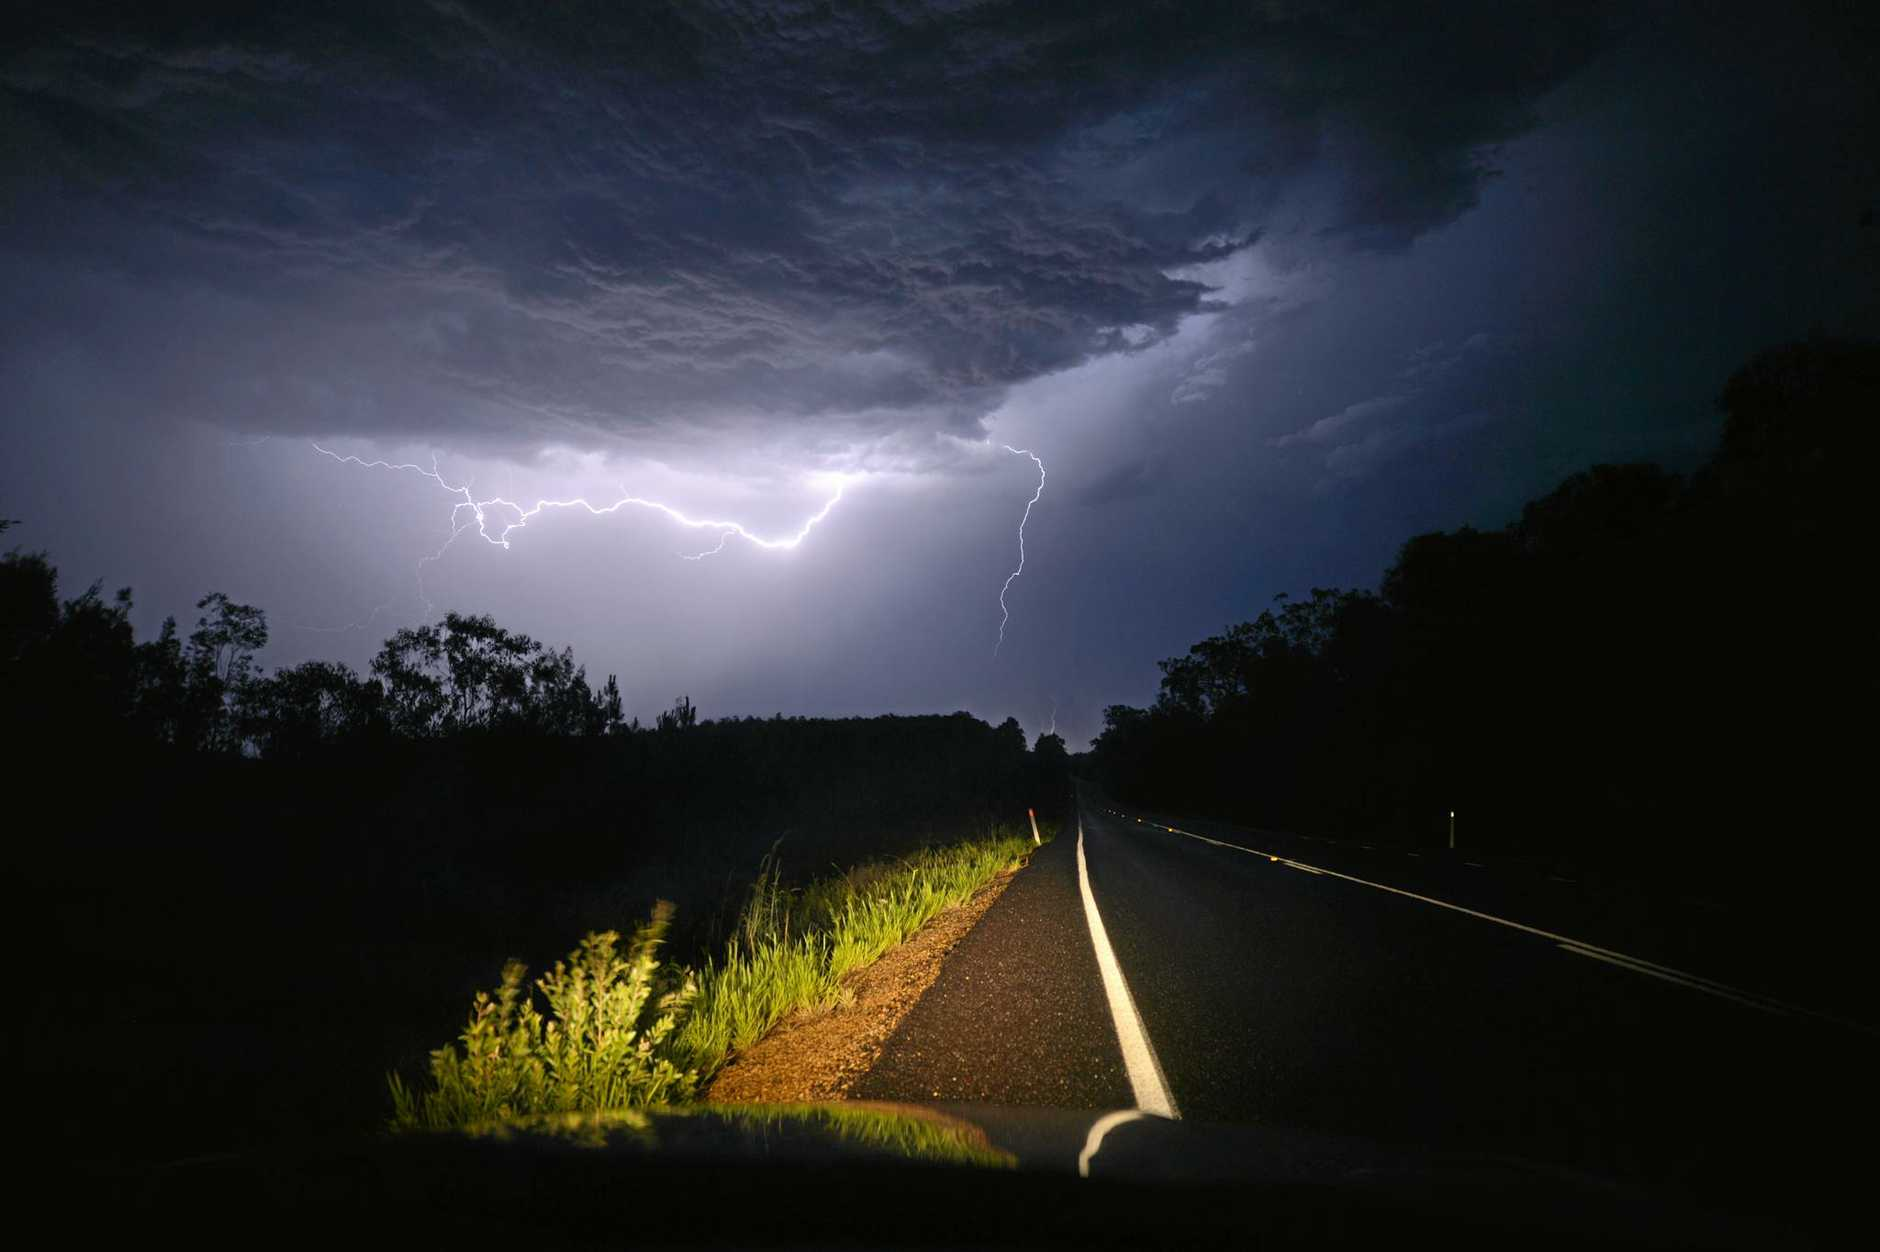 Emergency service crews urge anyone driving during a severe storm to pull over and let it pass.